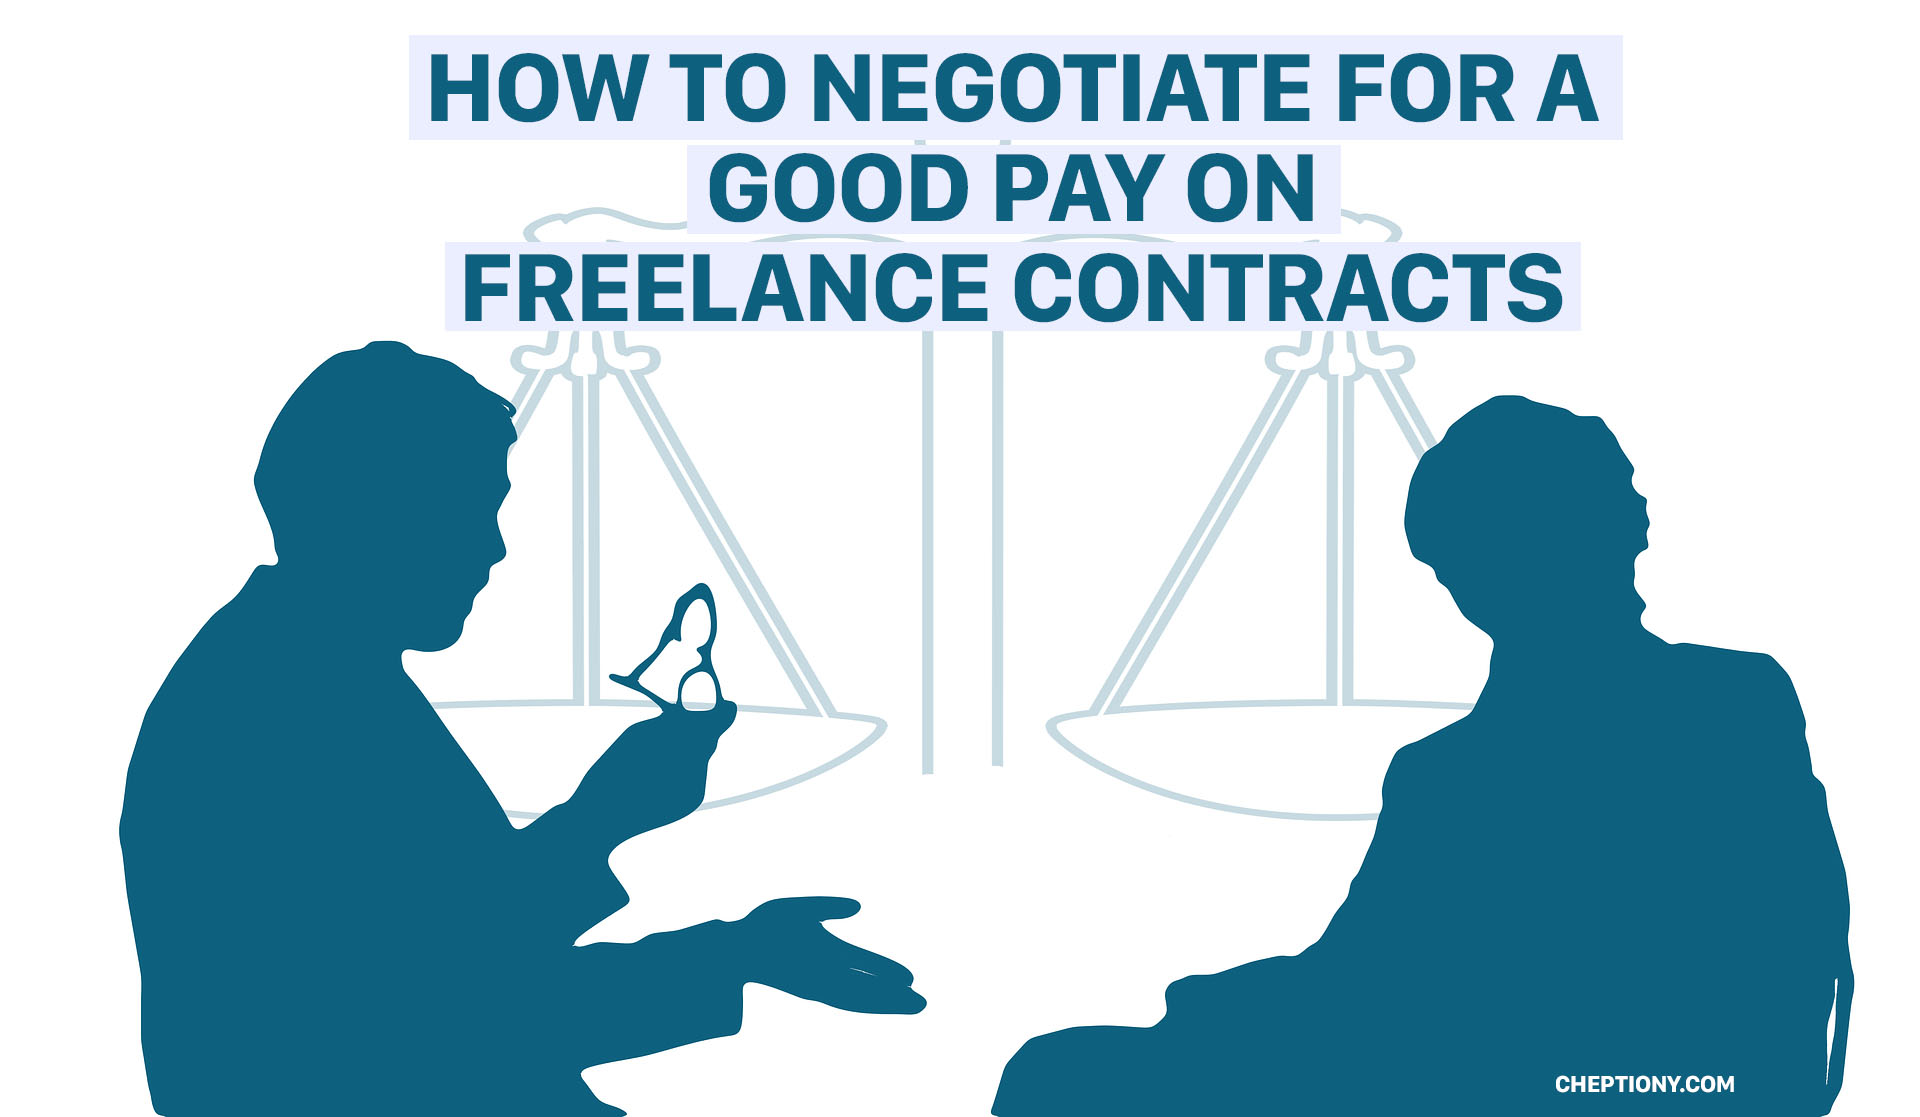 How to Negotiate For a Good Pay on Freelance Contracts